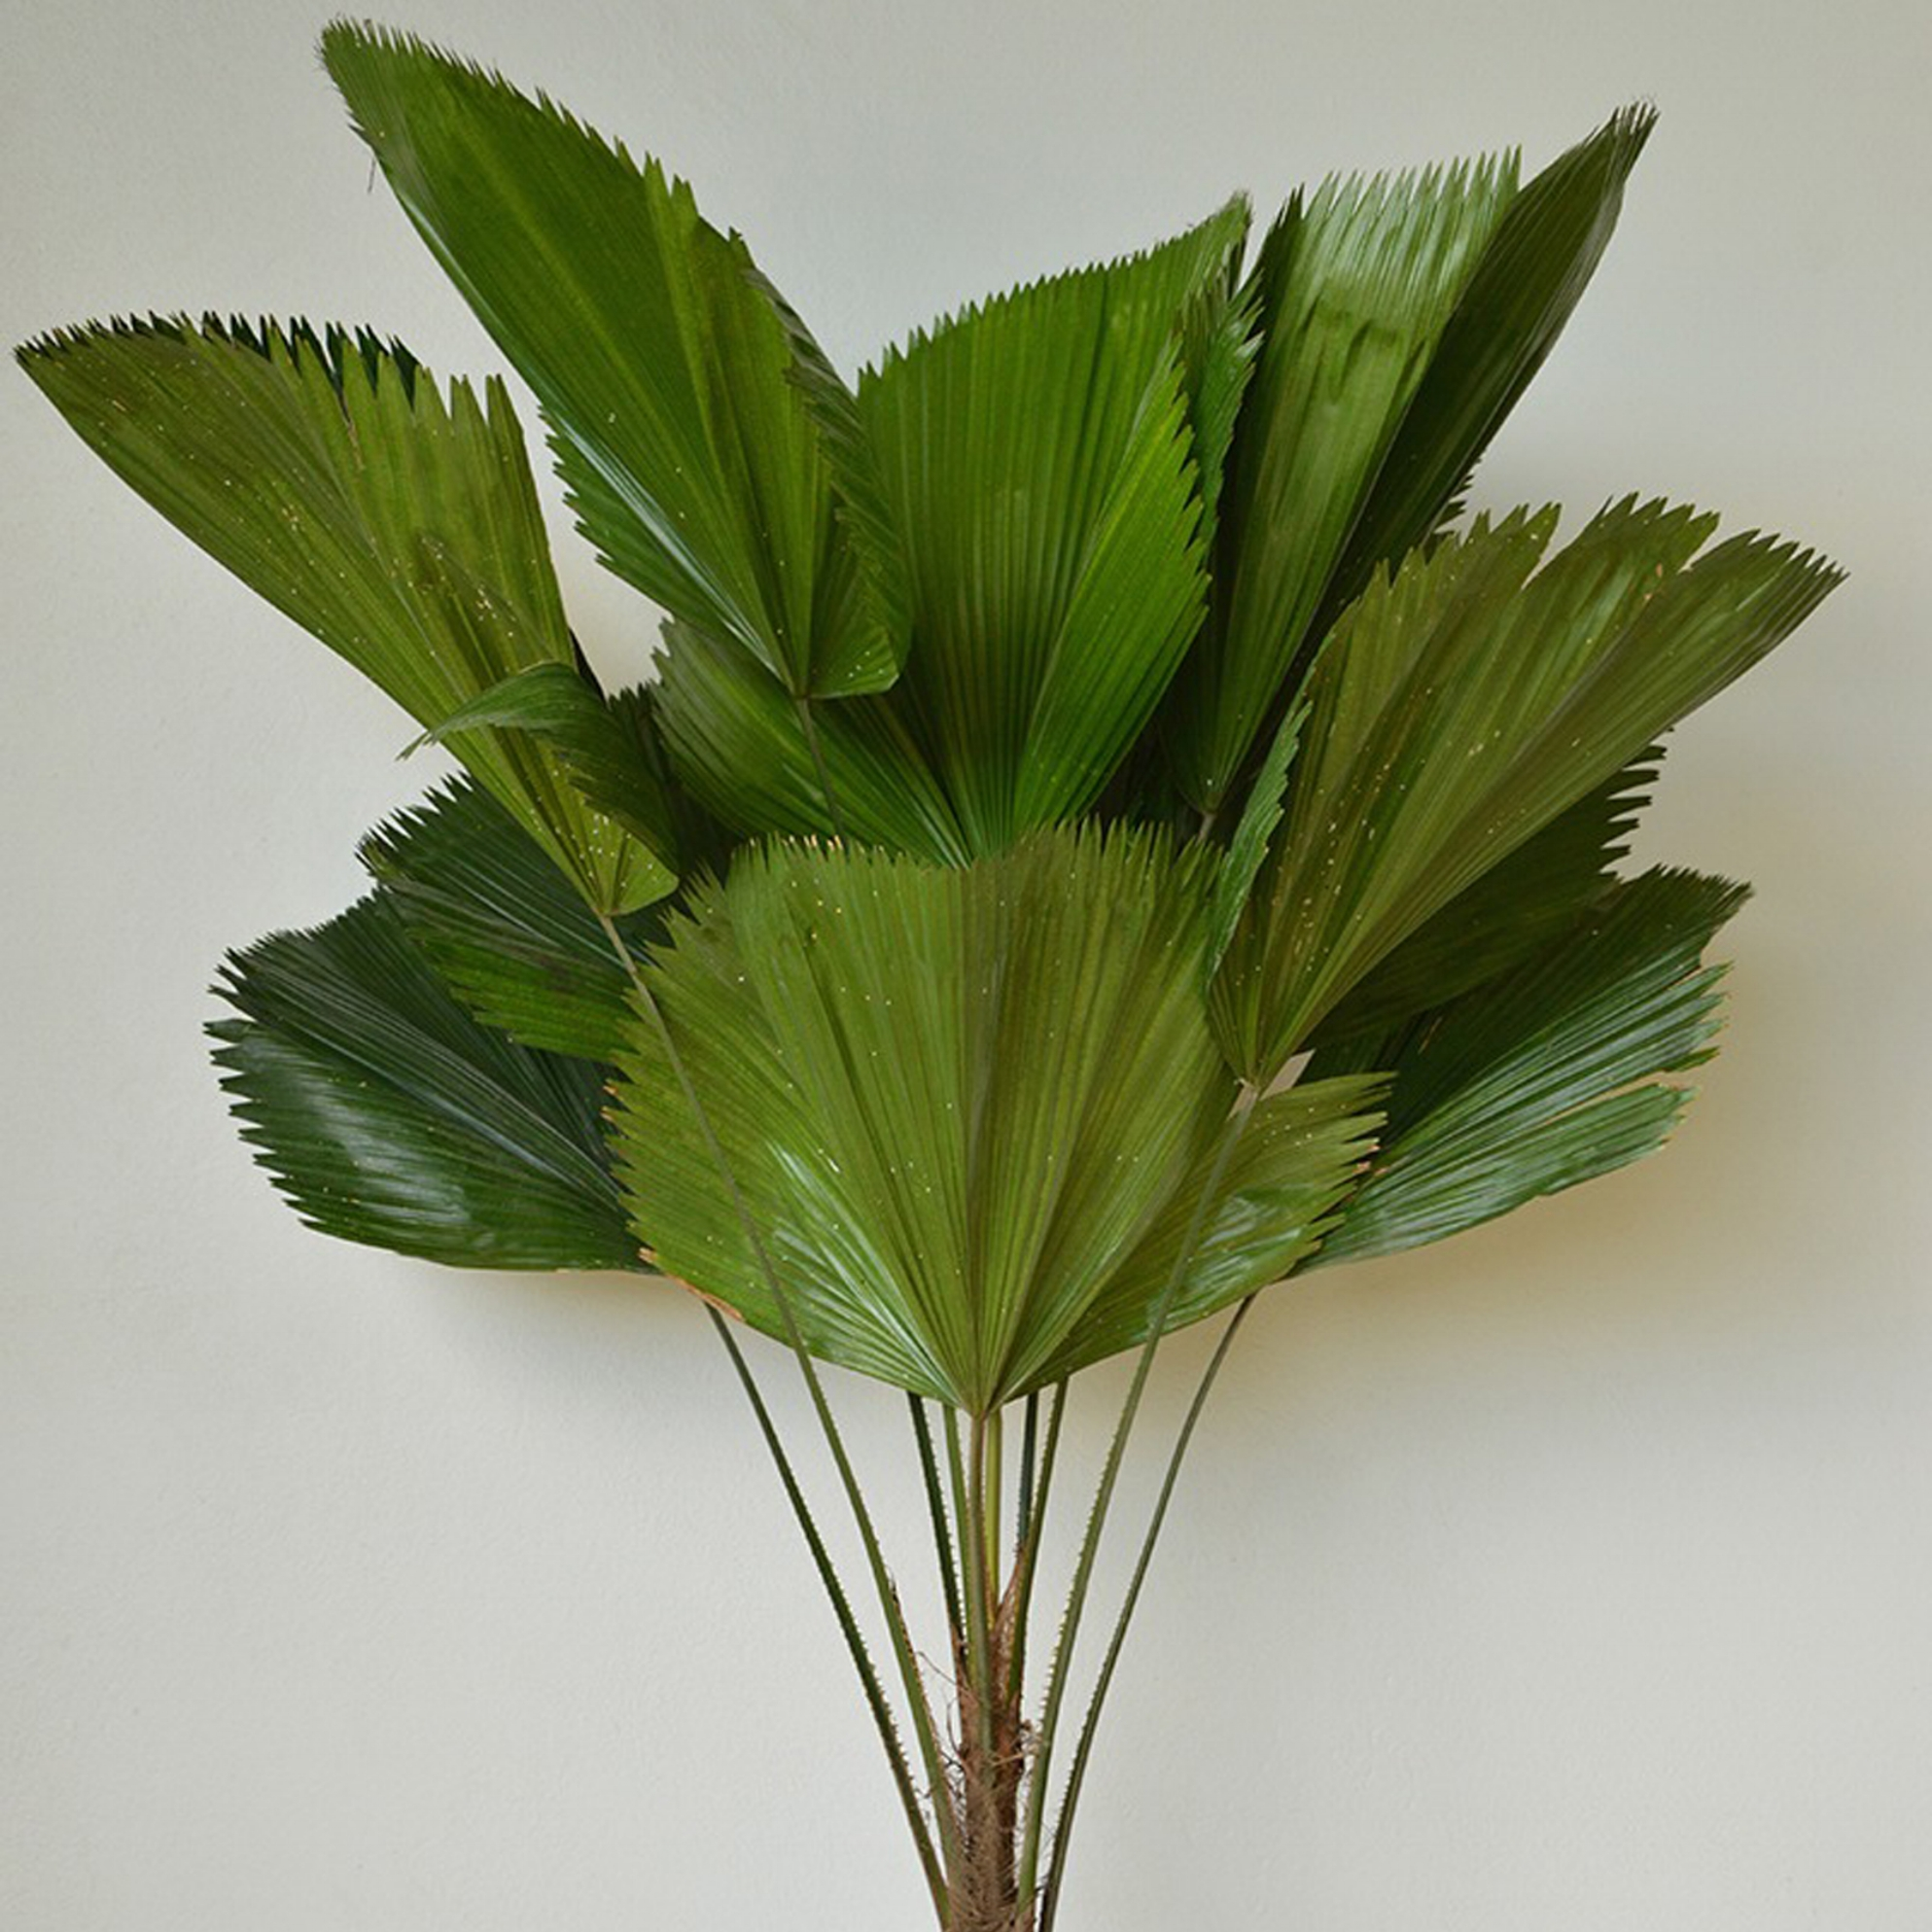 Ruffled Fan Palm - Licuala grandis -